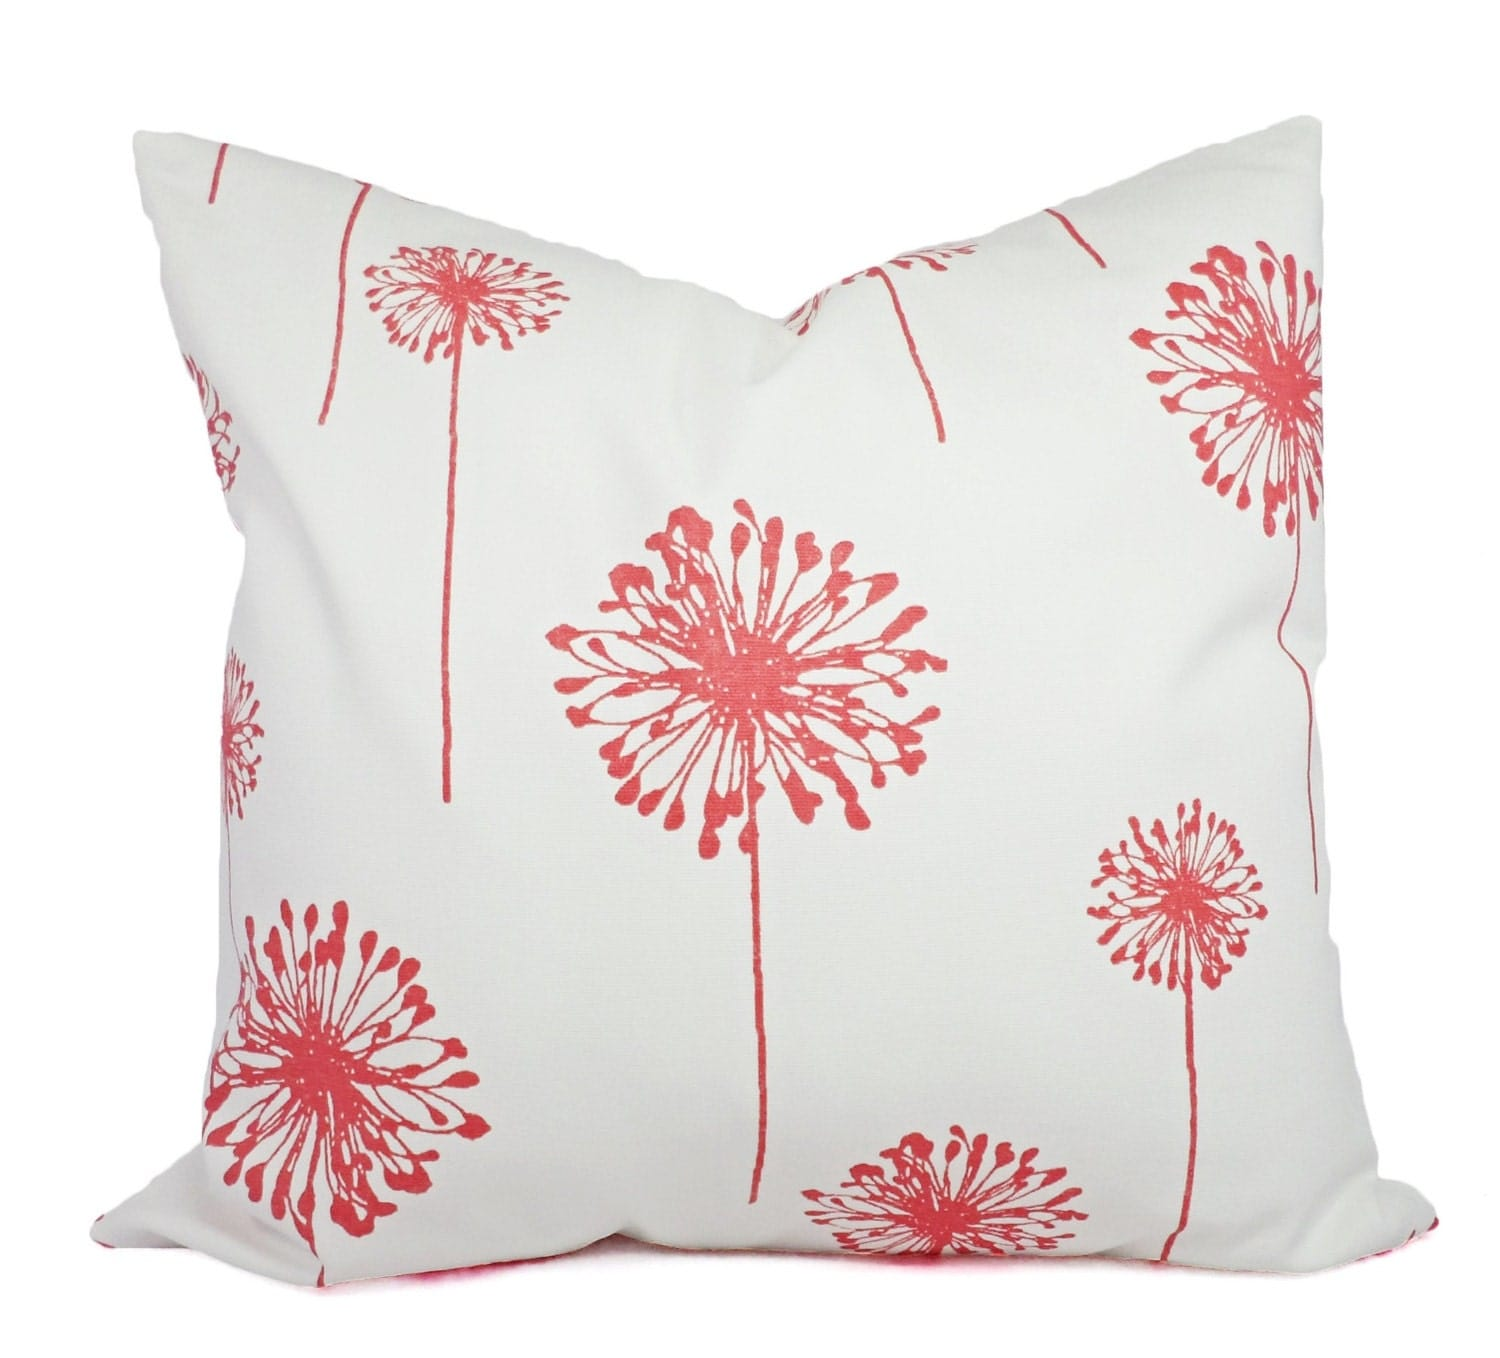 Throw Pillows Coral : Coral Throw Pillows Coral Dandelion Decorative Throw Pillows